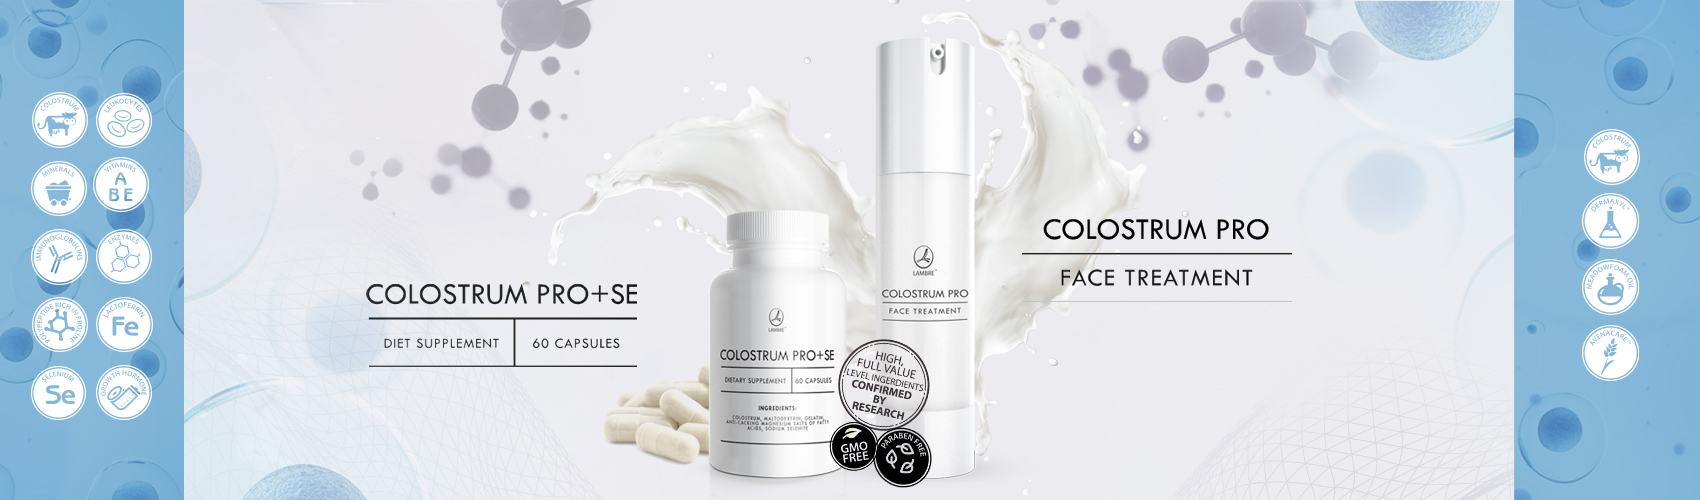 Крем Colostrum Face Treatment Lambre Молозиво для лица Ламбре